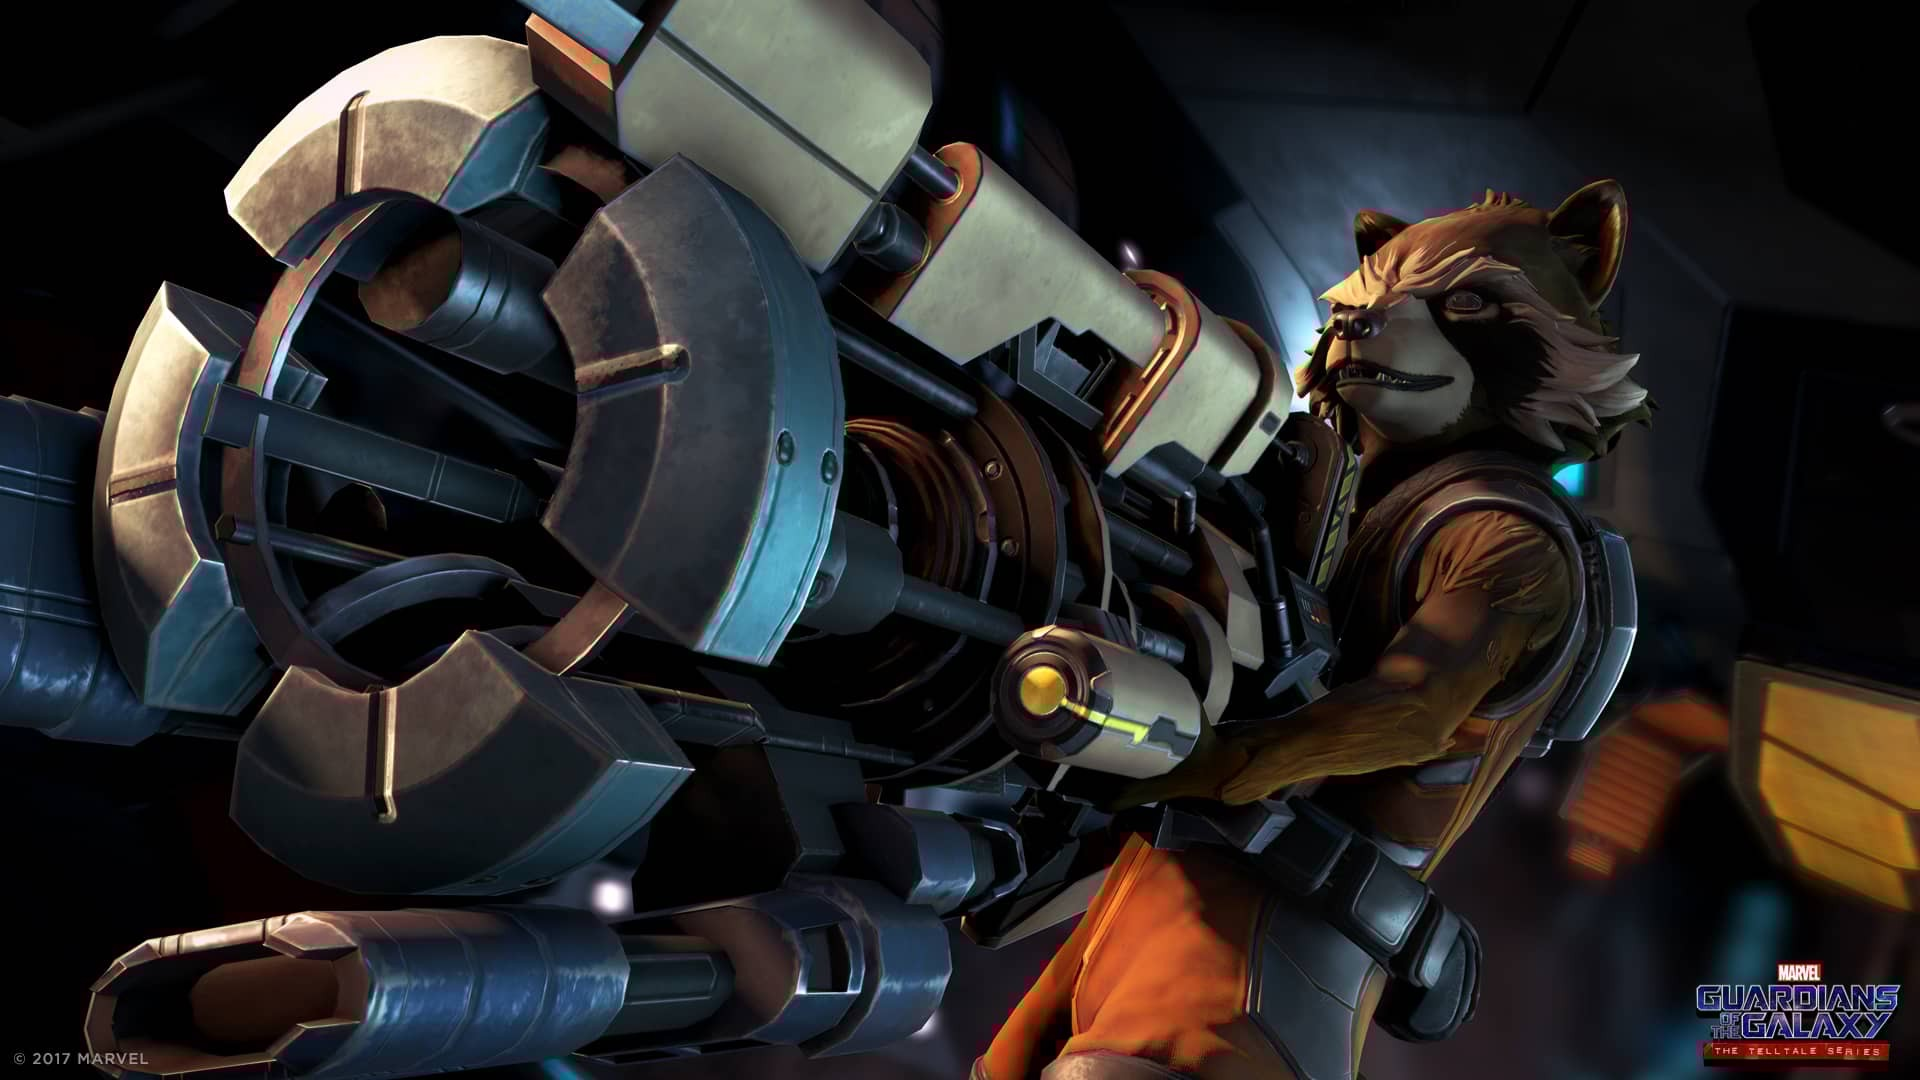 guardians-of-the-galaxy-telltale-rocket-gun-screenshot